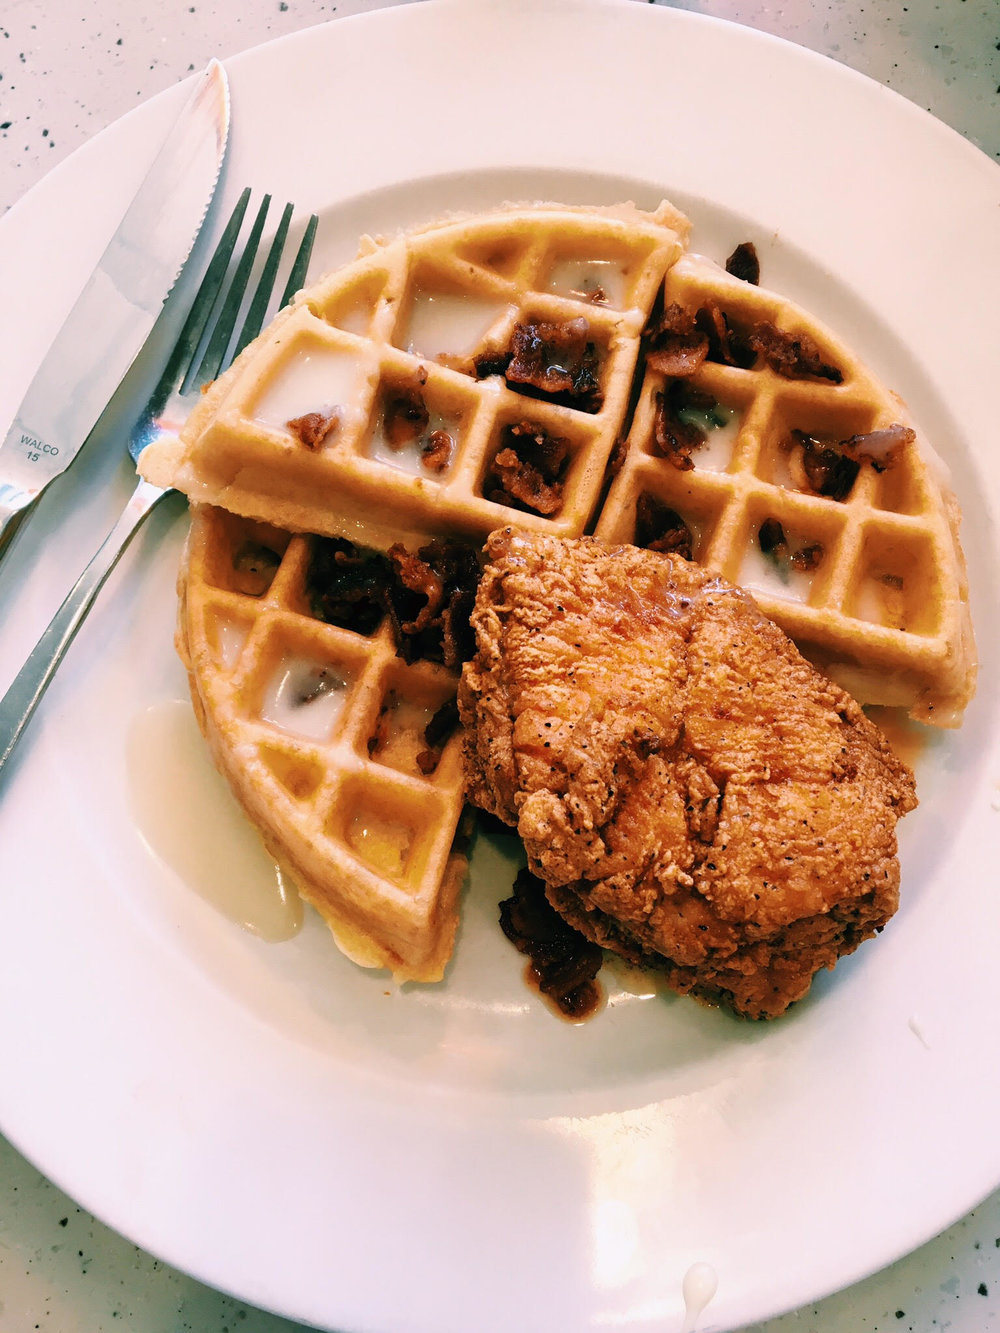 Wild Chicken and Waffle photo c/o Claire D. (my brunch partner in crime)